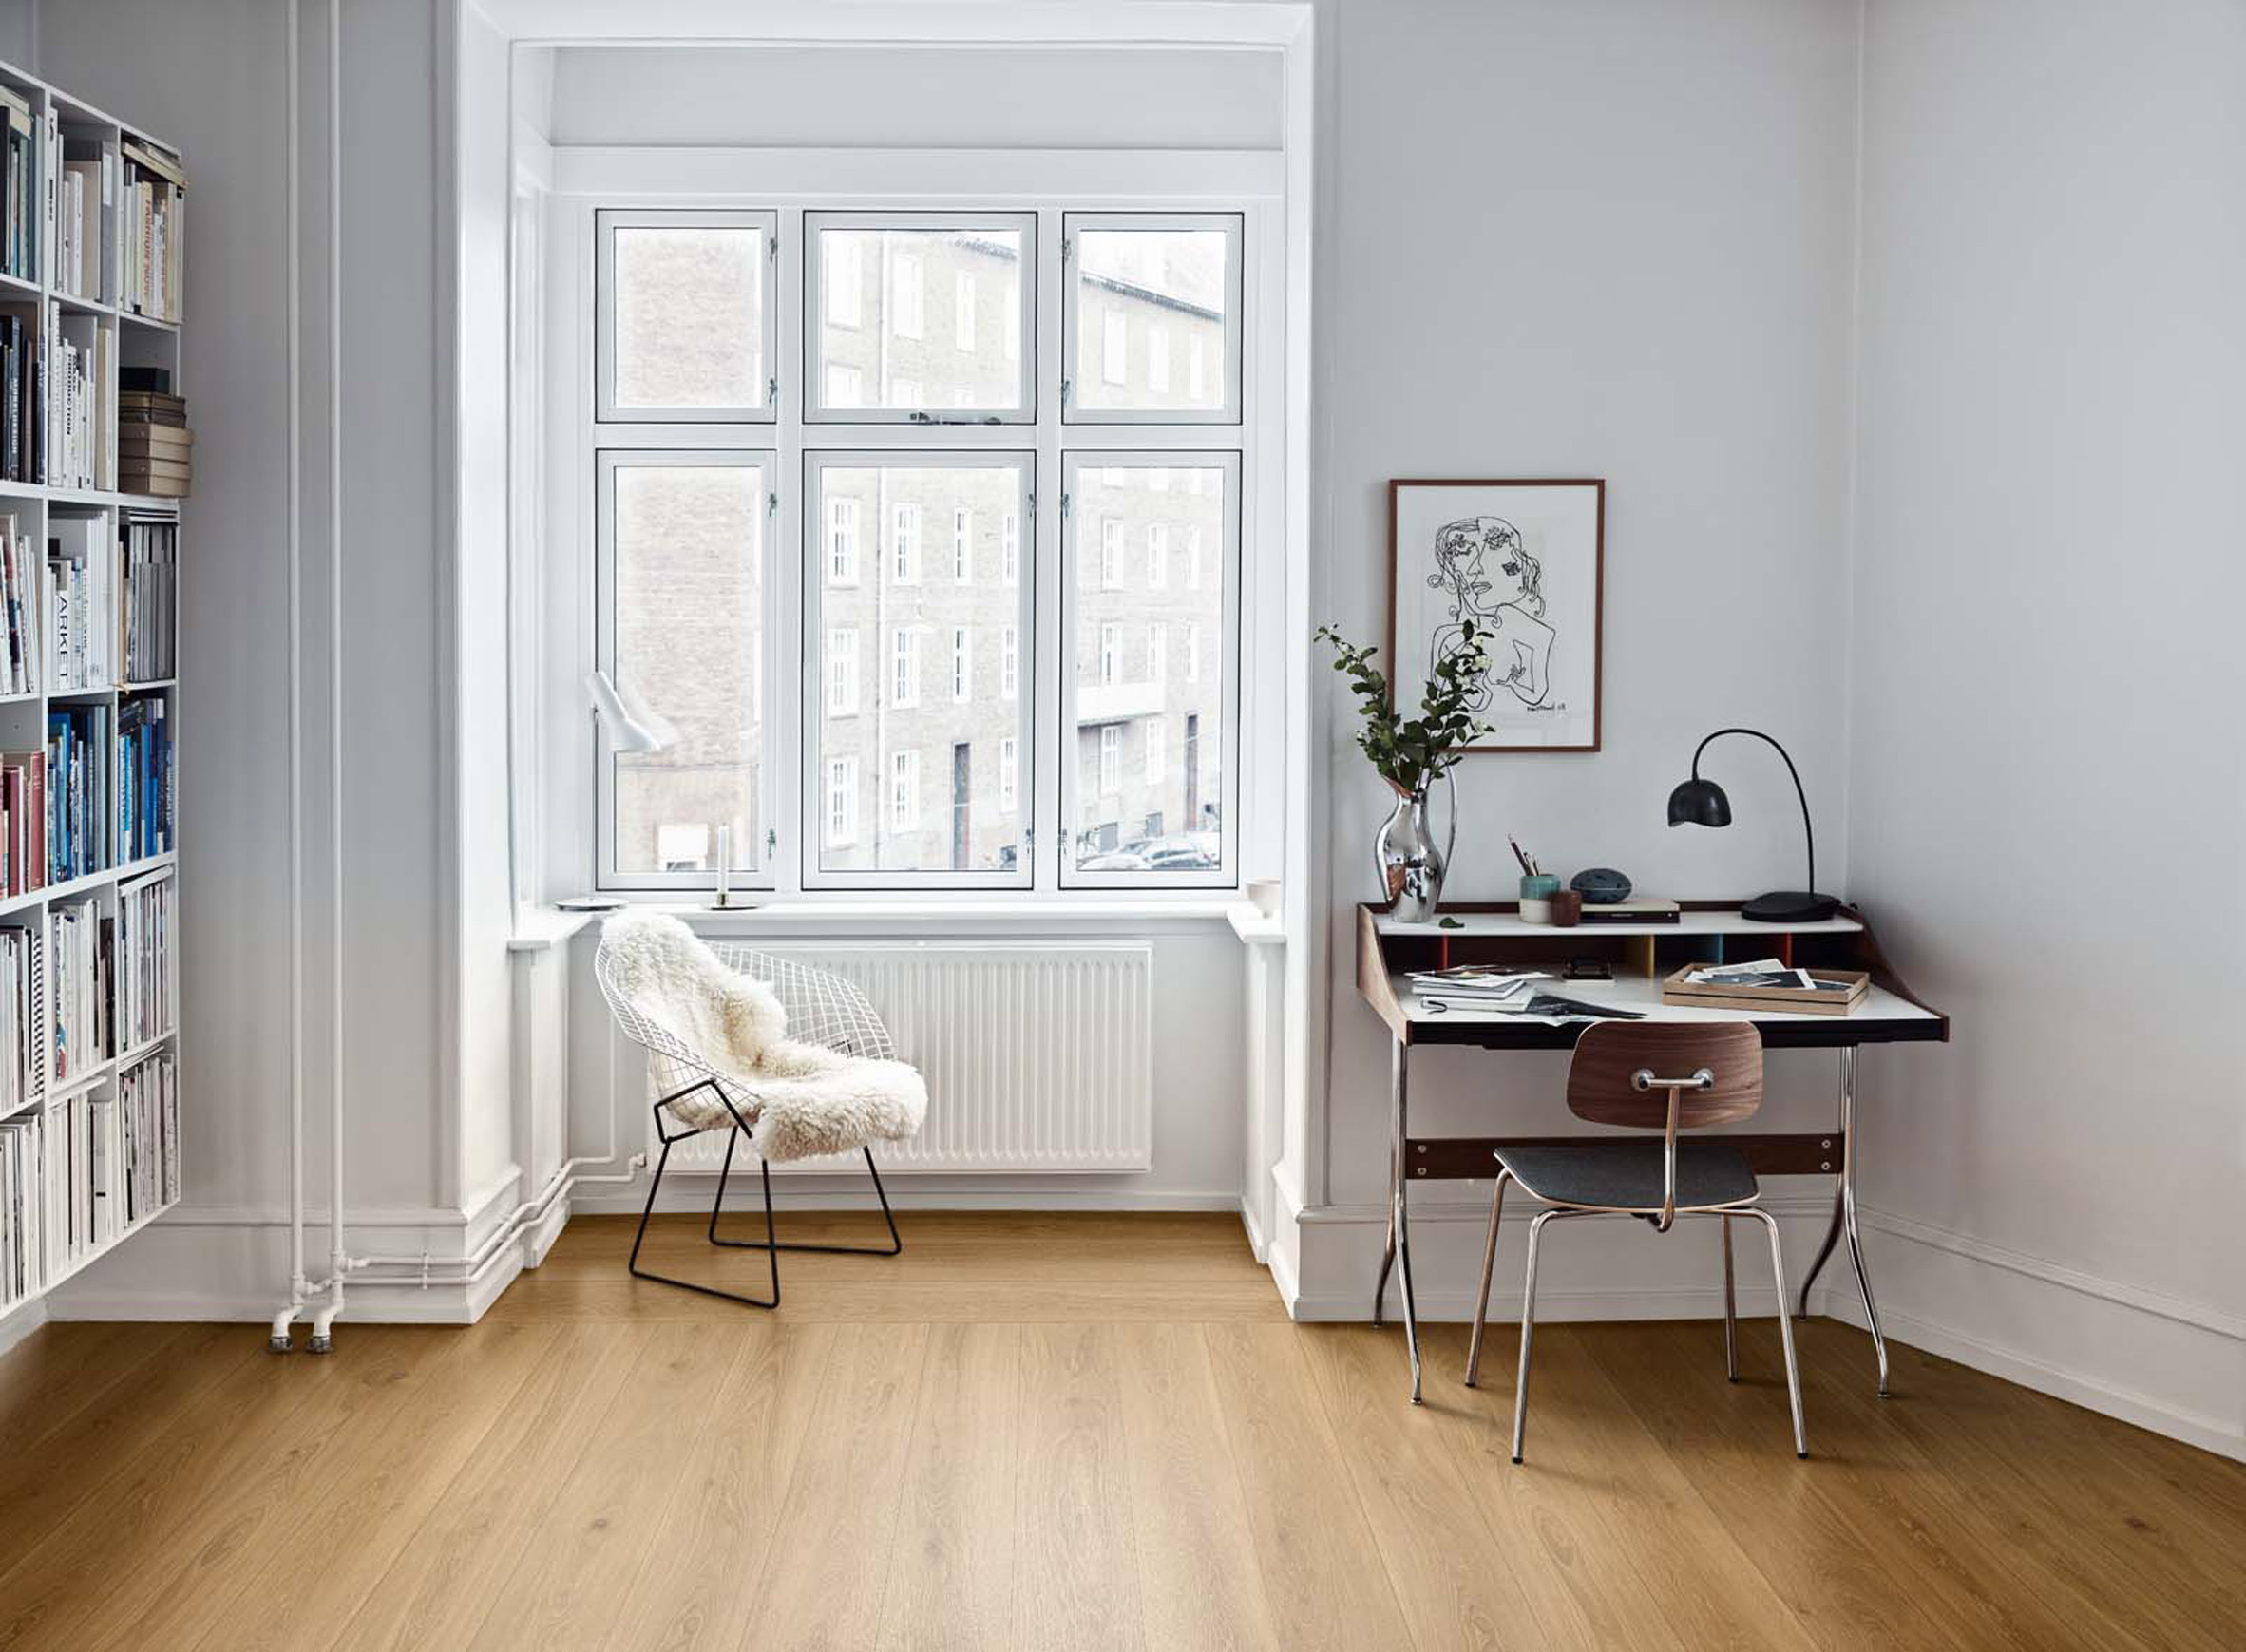 Study nook and window seat with tiled wood-like floor